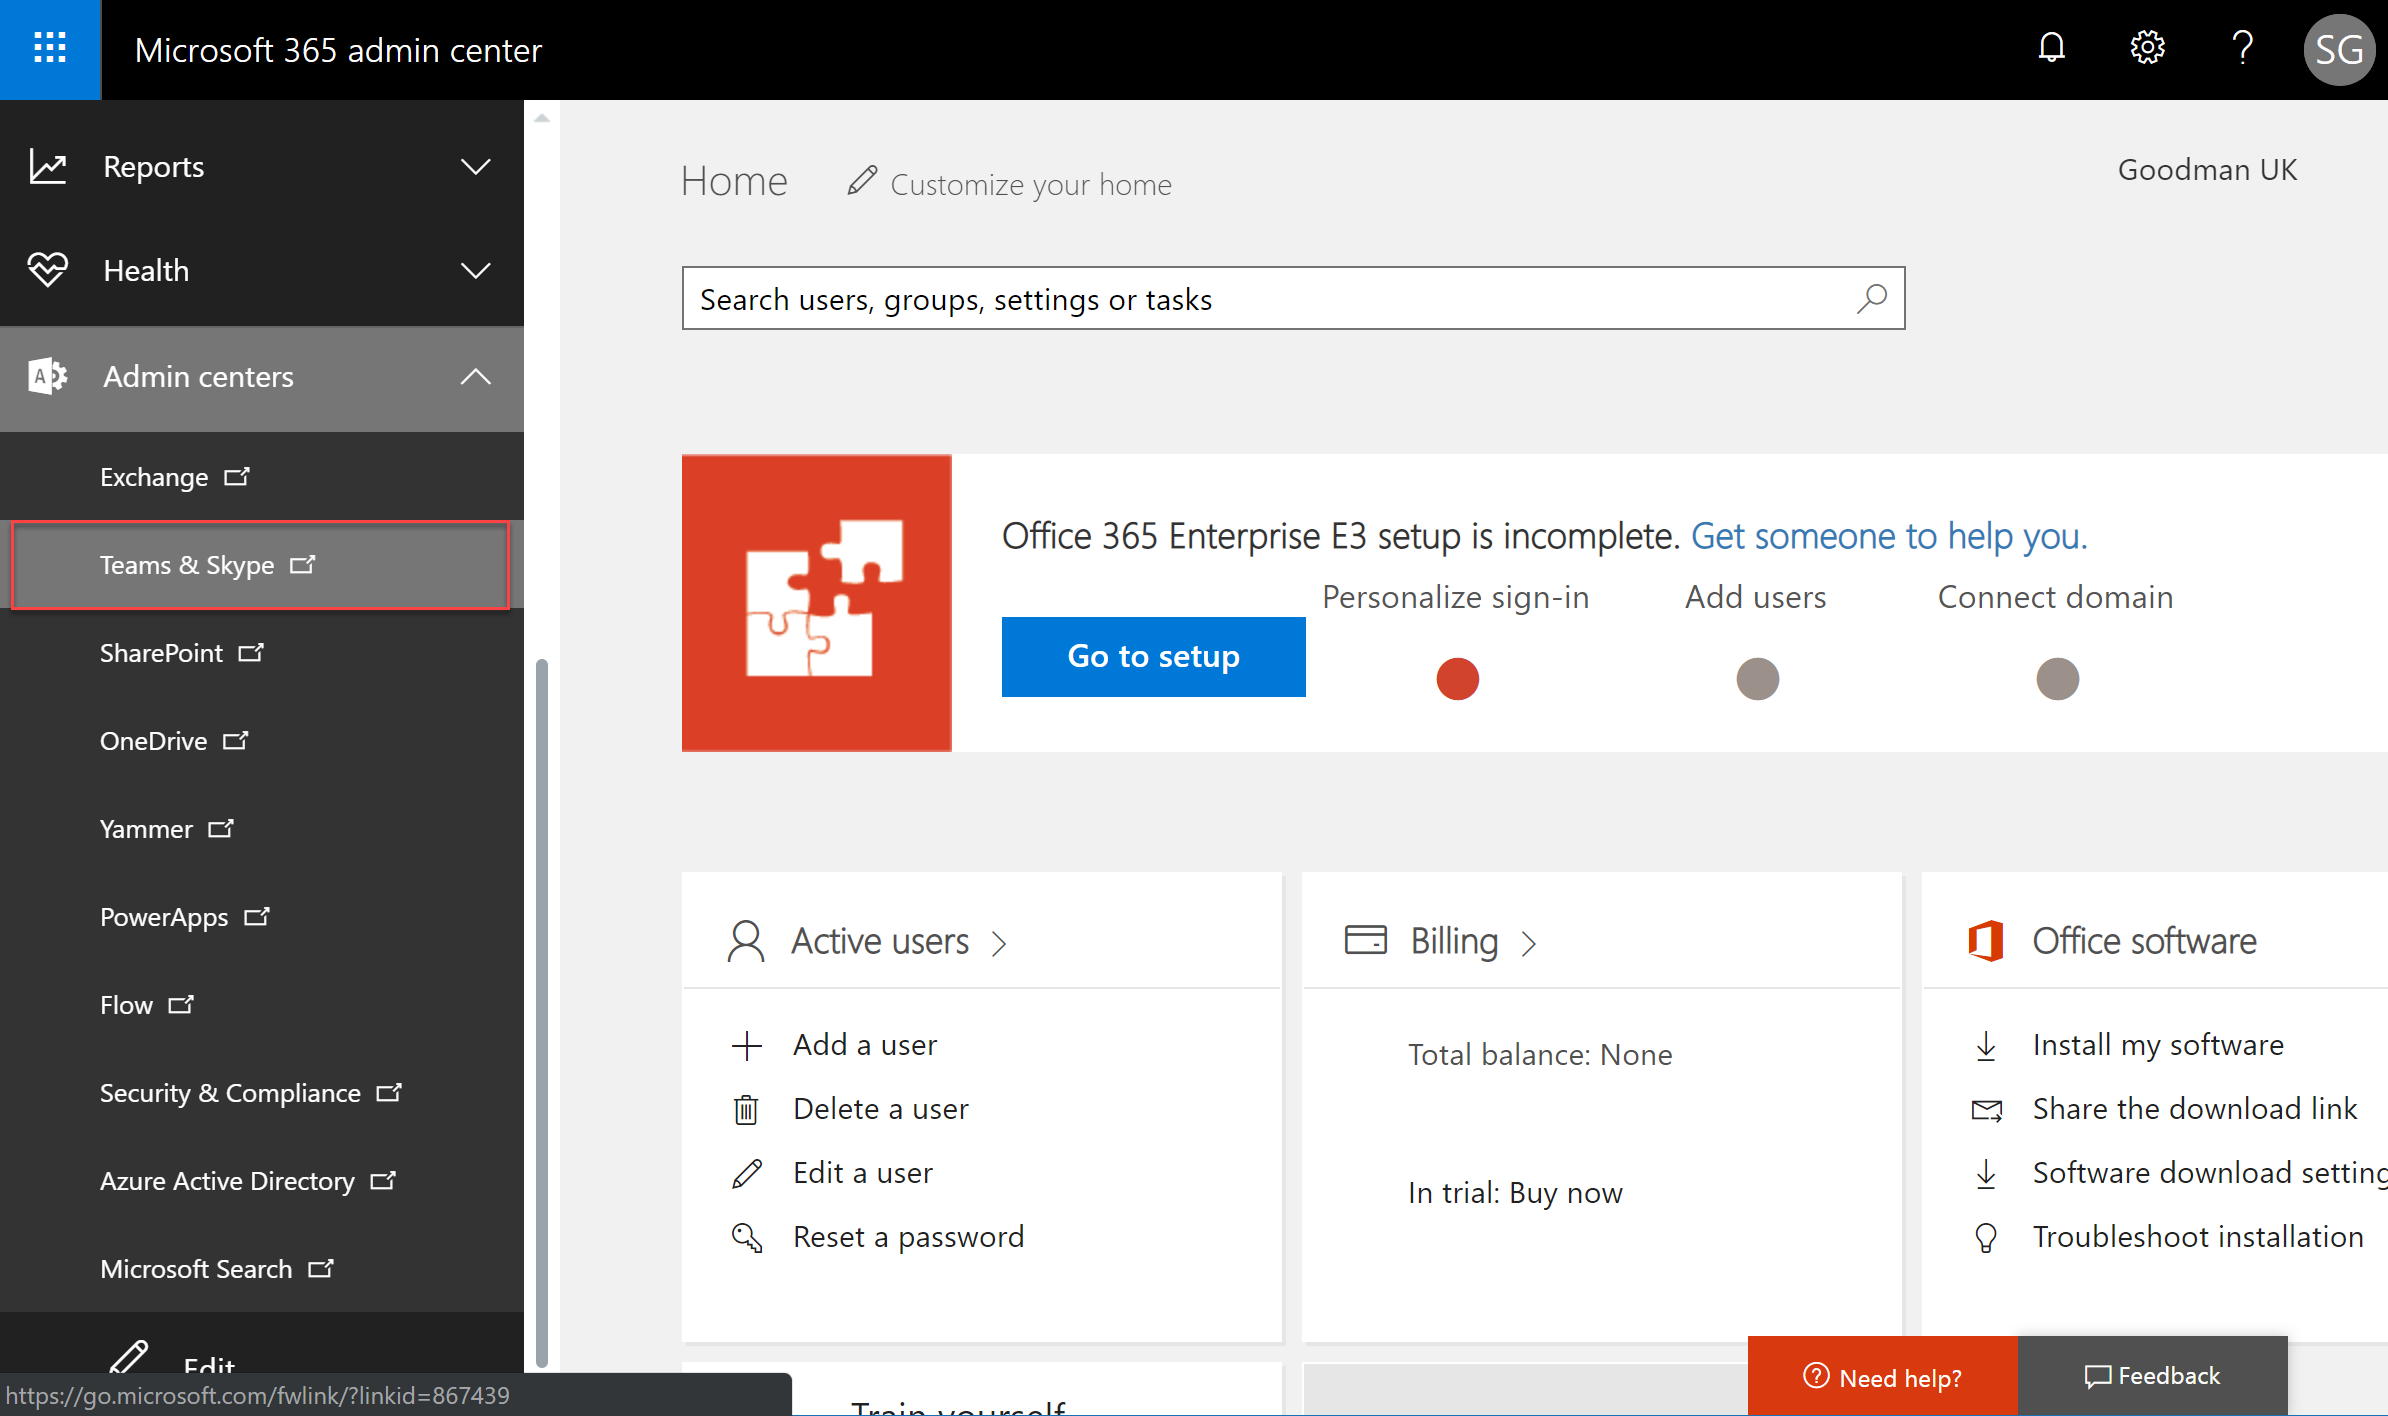 Microsoft 365 admin center